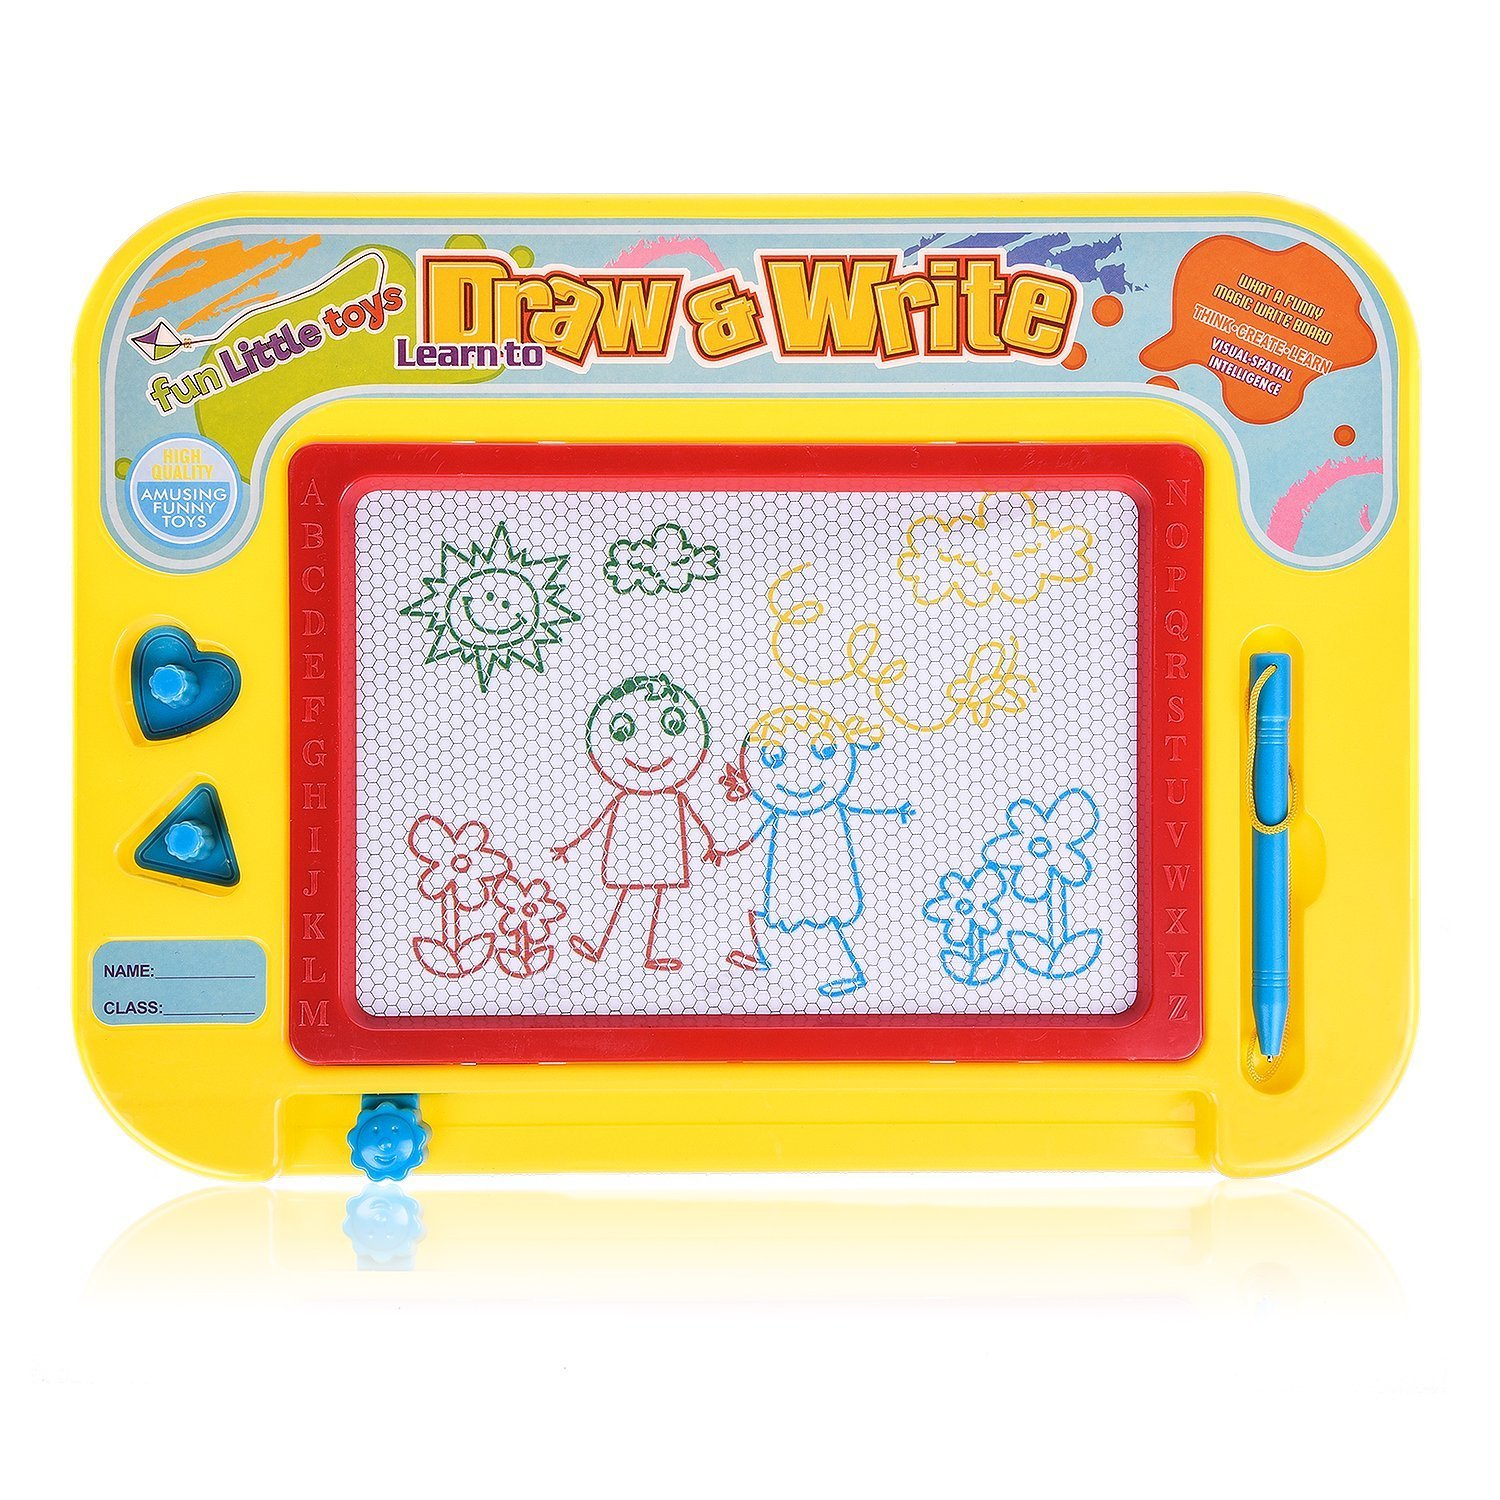 Fun Little Toys Magnetic Drawing Board, Magna Colorful Drawing Board, Erasable Doodle Board for Education and Learning, Sketch Writing Board for Toddler (Travel Size)